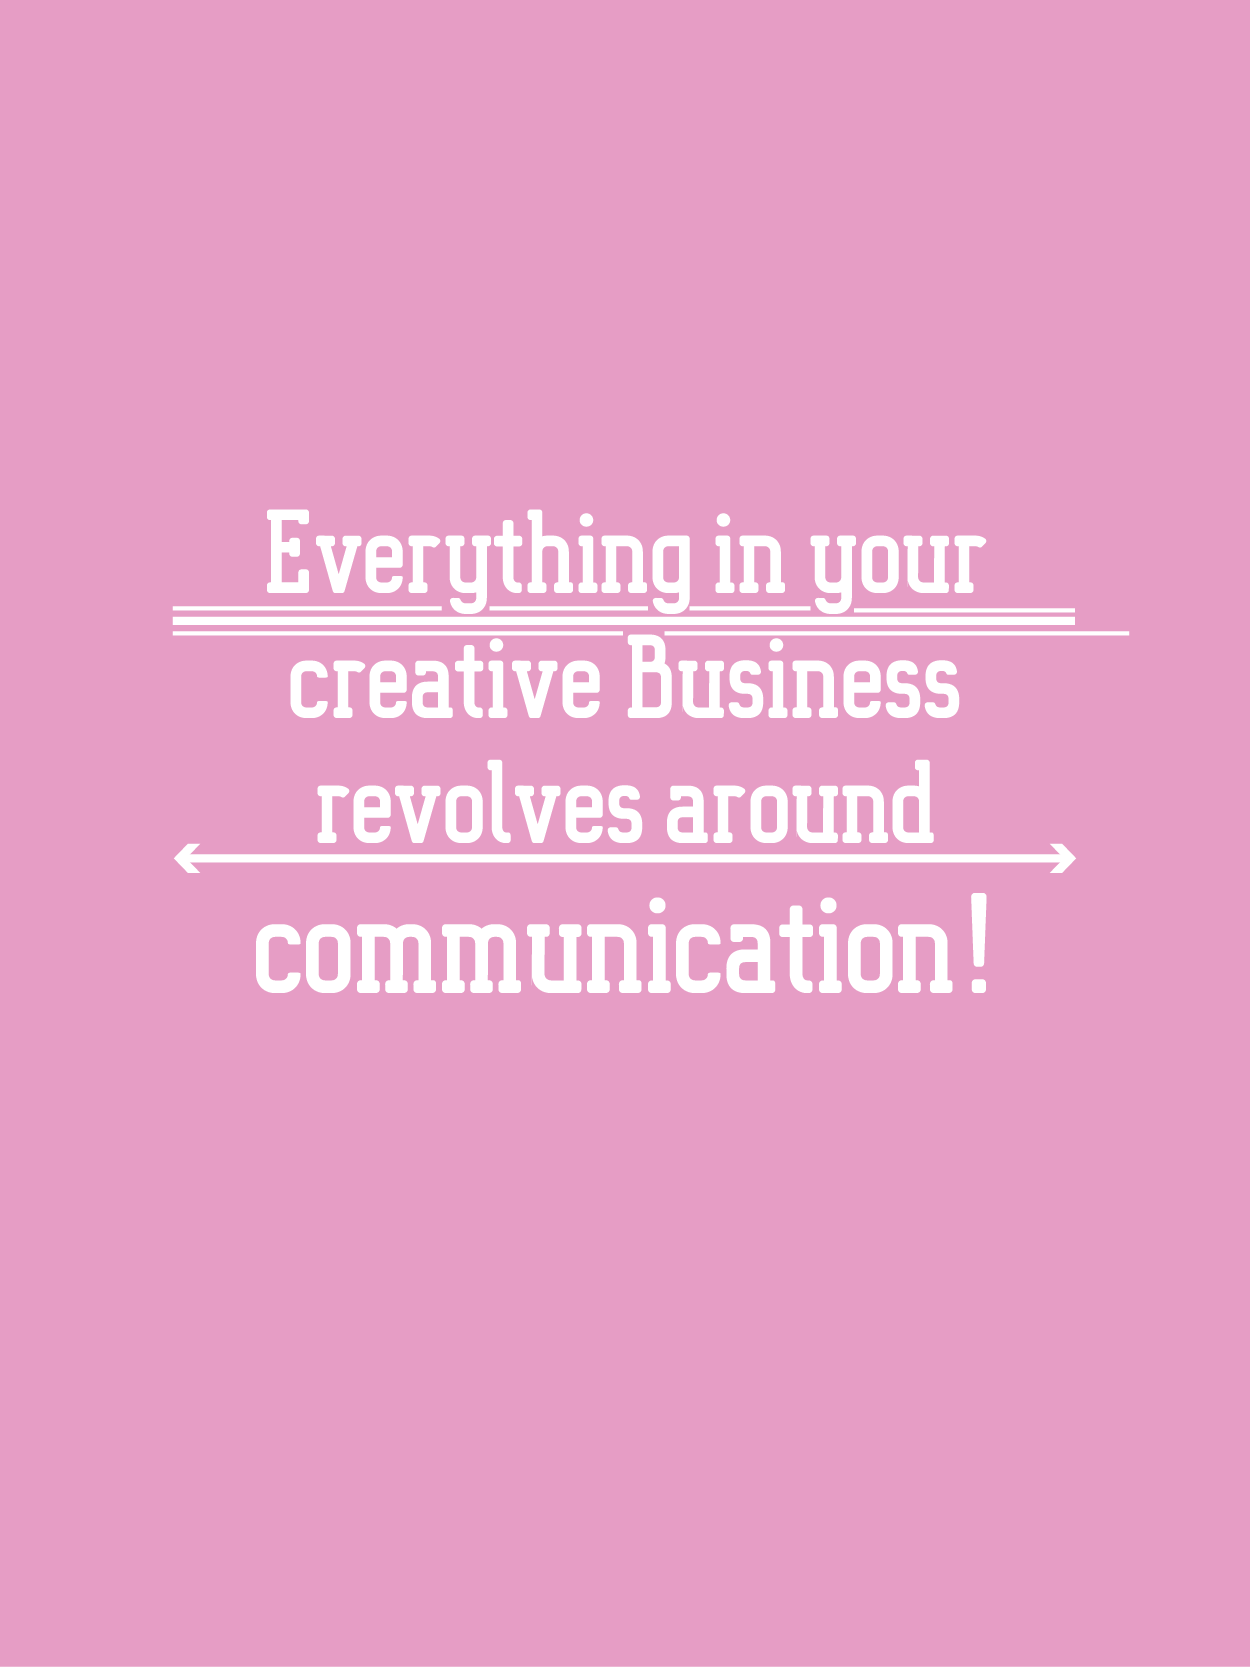 the BIZ school for creatives, Everything in your creative Business revolves around communication, read the full blog post at www.kerstinpressler.com/blog